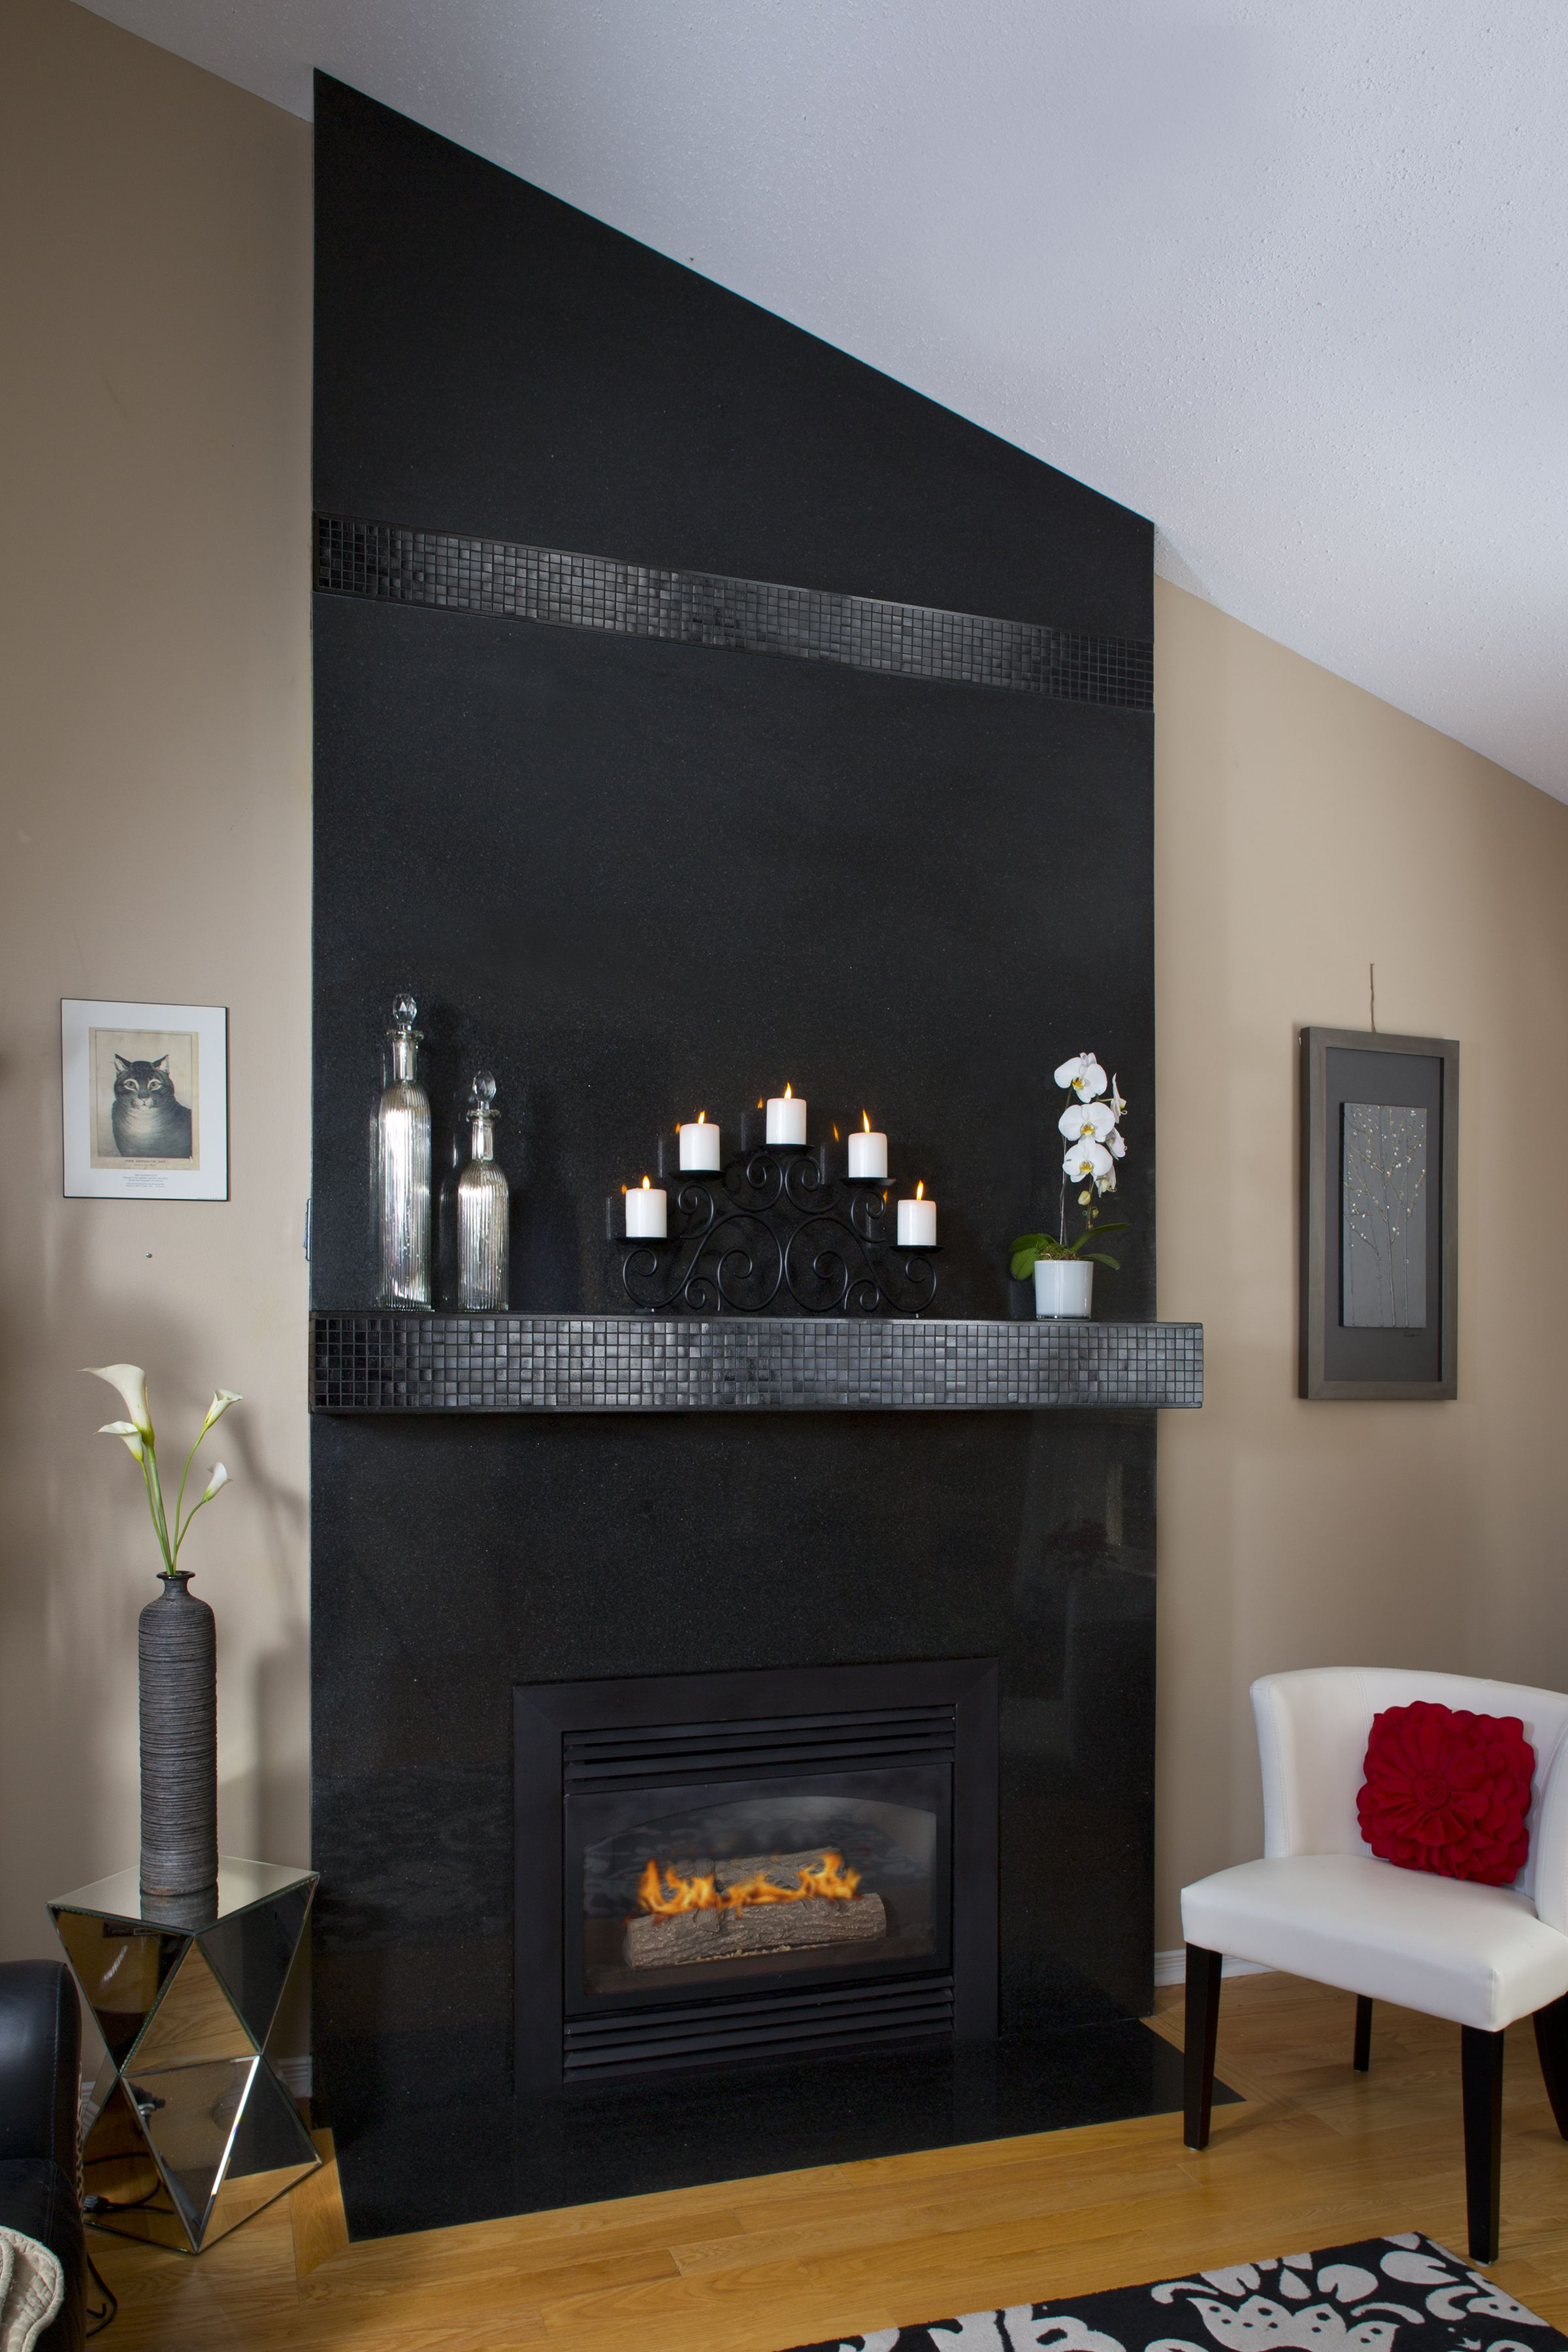 This Fireplace Surround Is Made Of Floor To Ceiling Granite With An Added Touch High End Mosaic